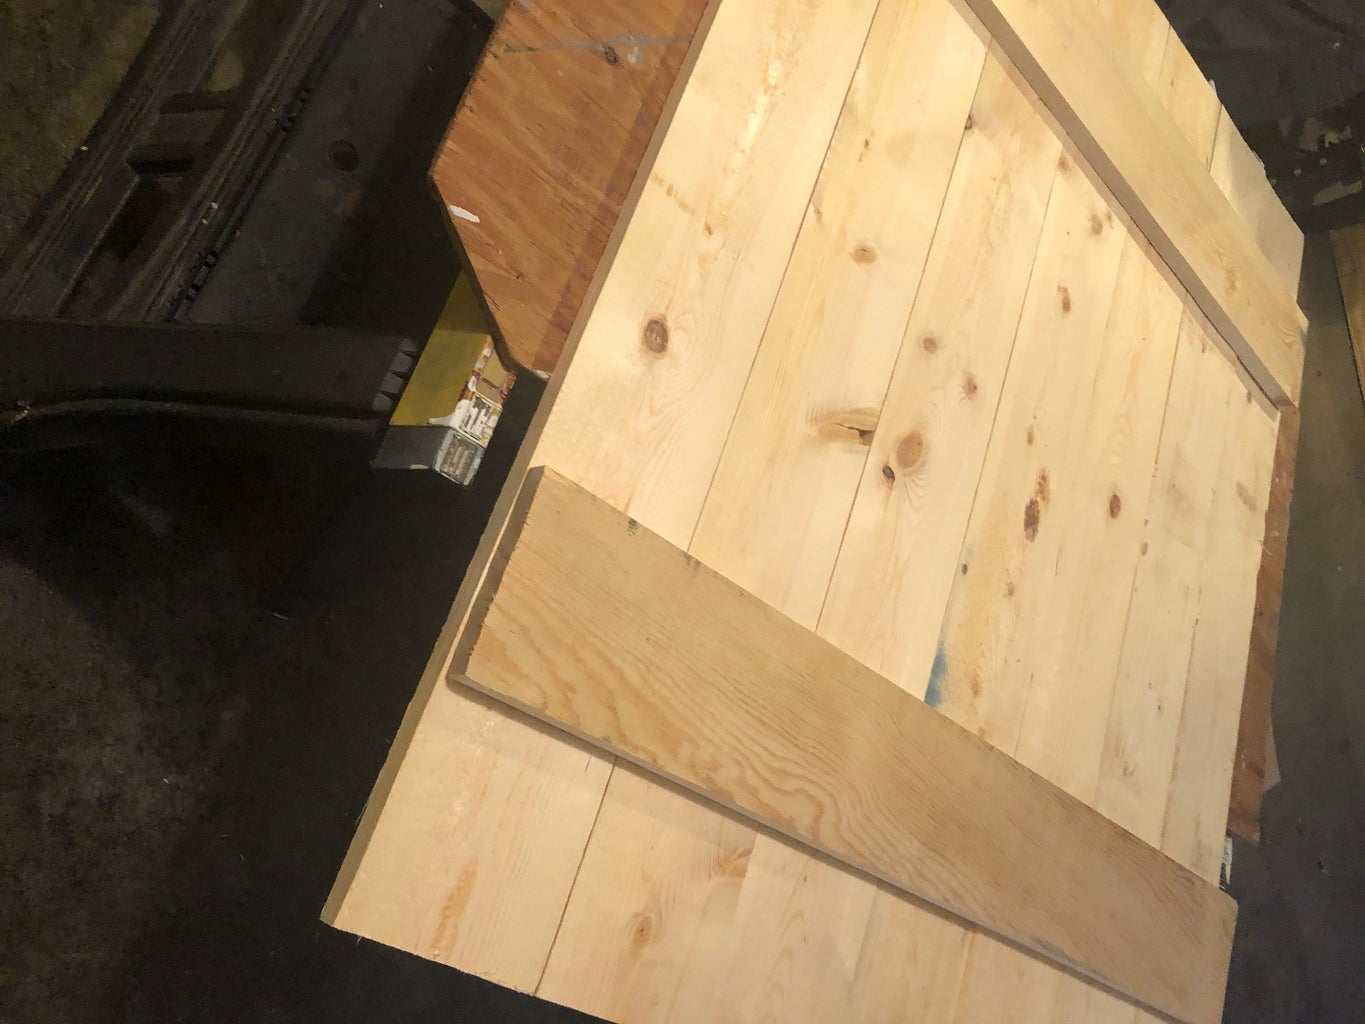 Laying Out the Boards